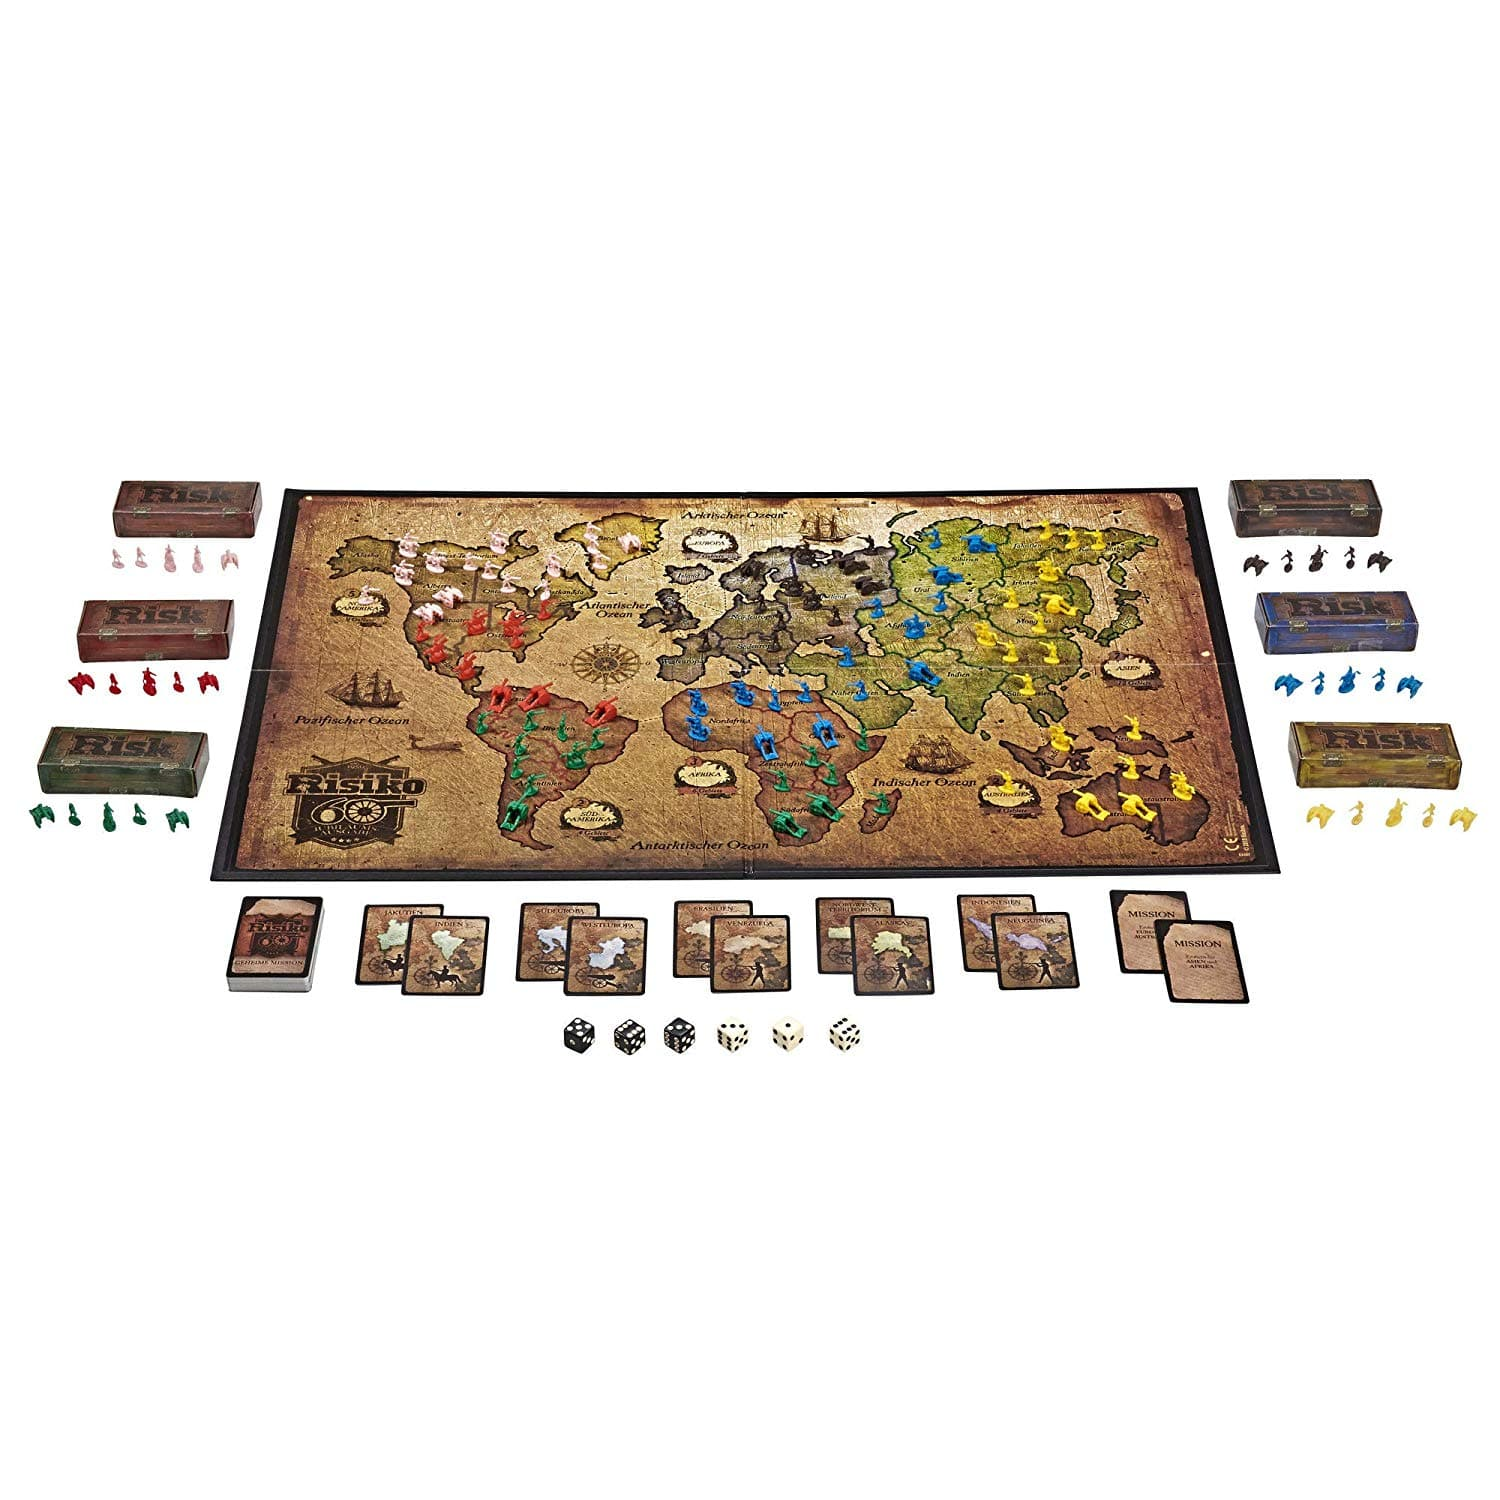 Classic risk board game $14, 60th anniversary version $25 at amazon today only